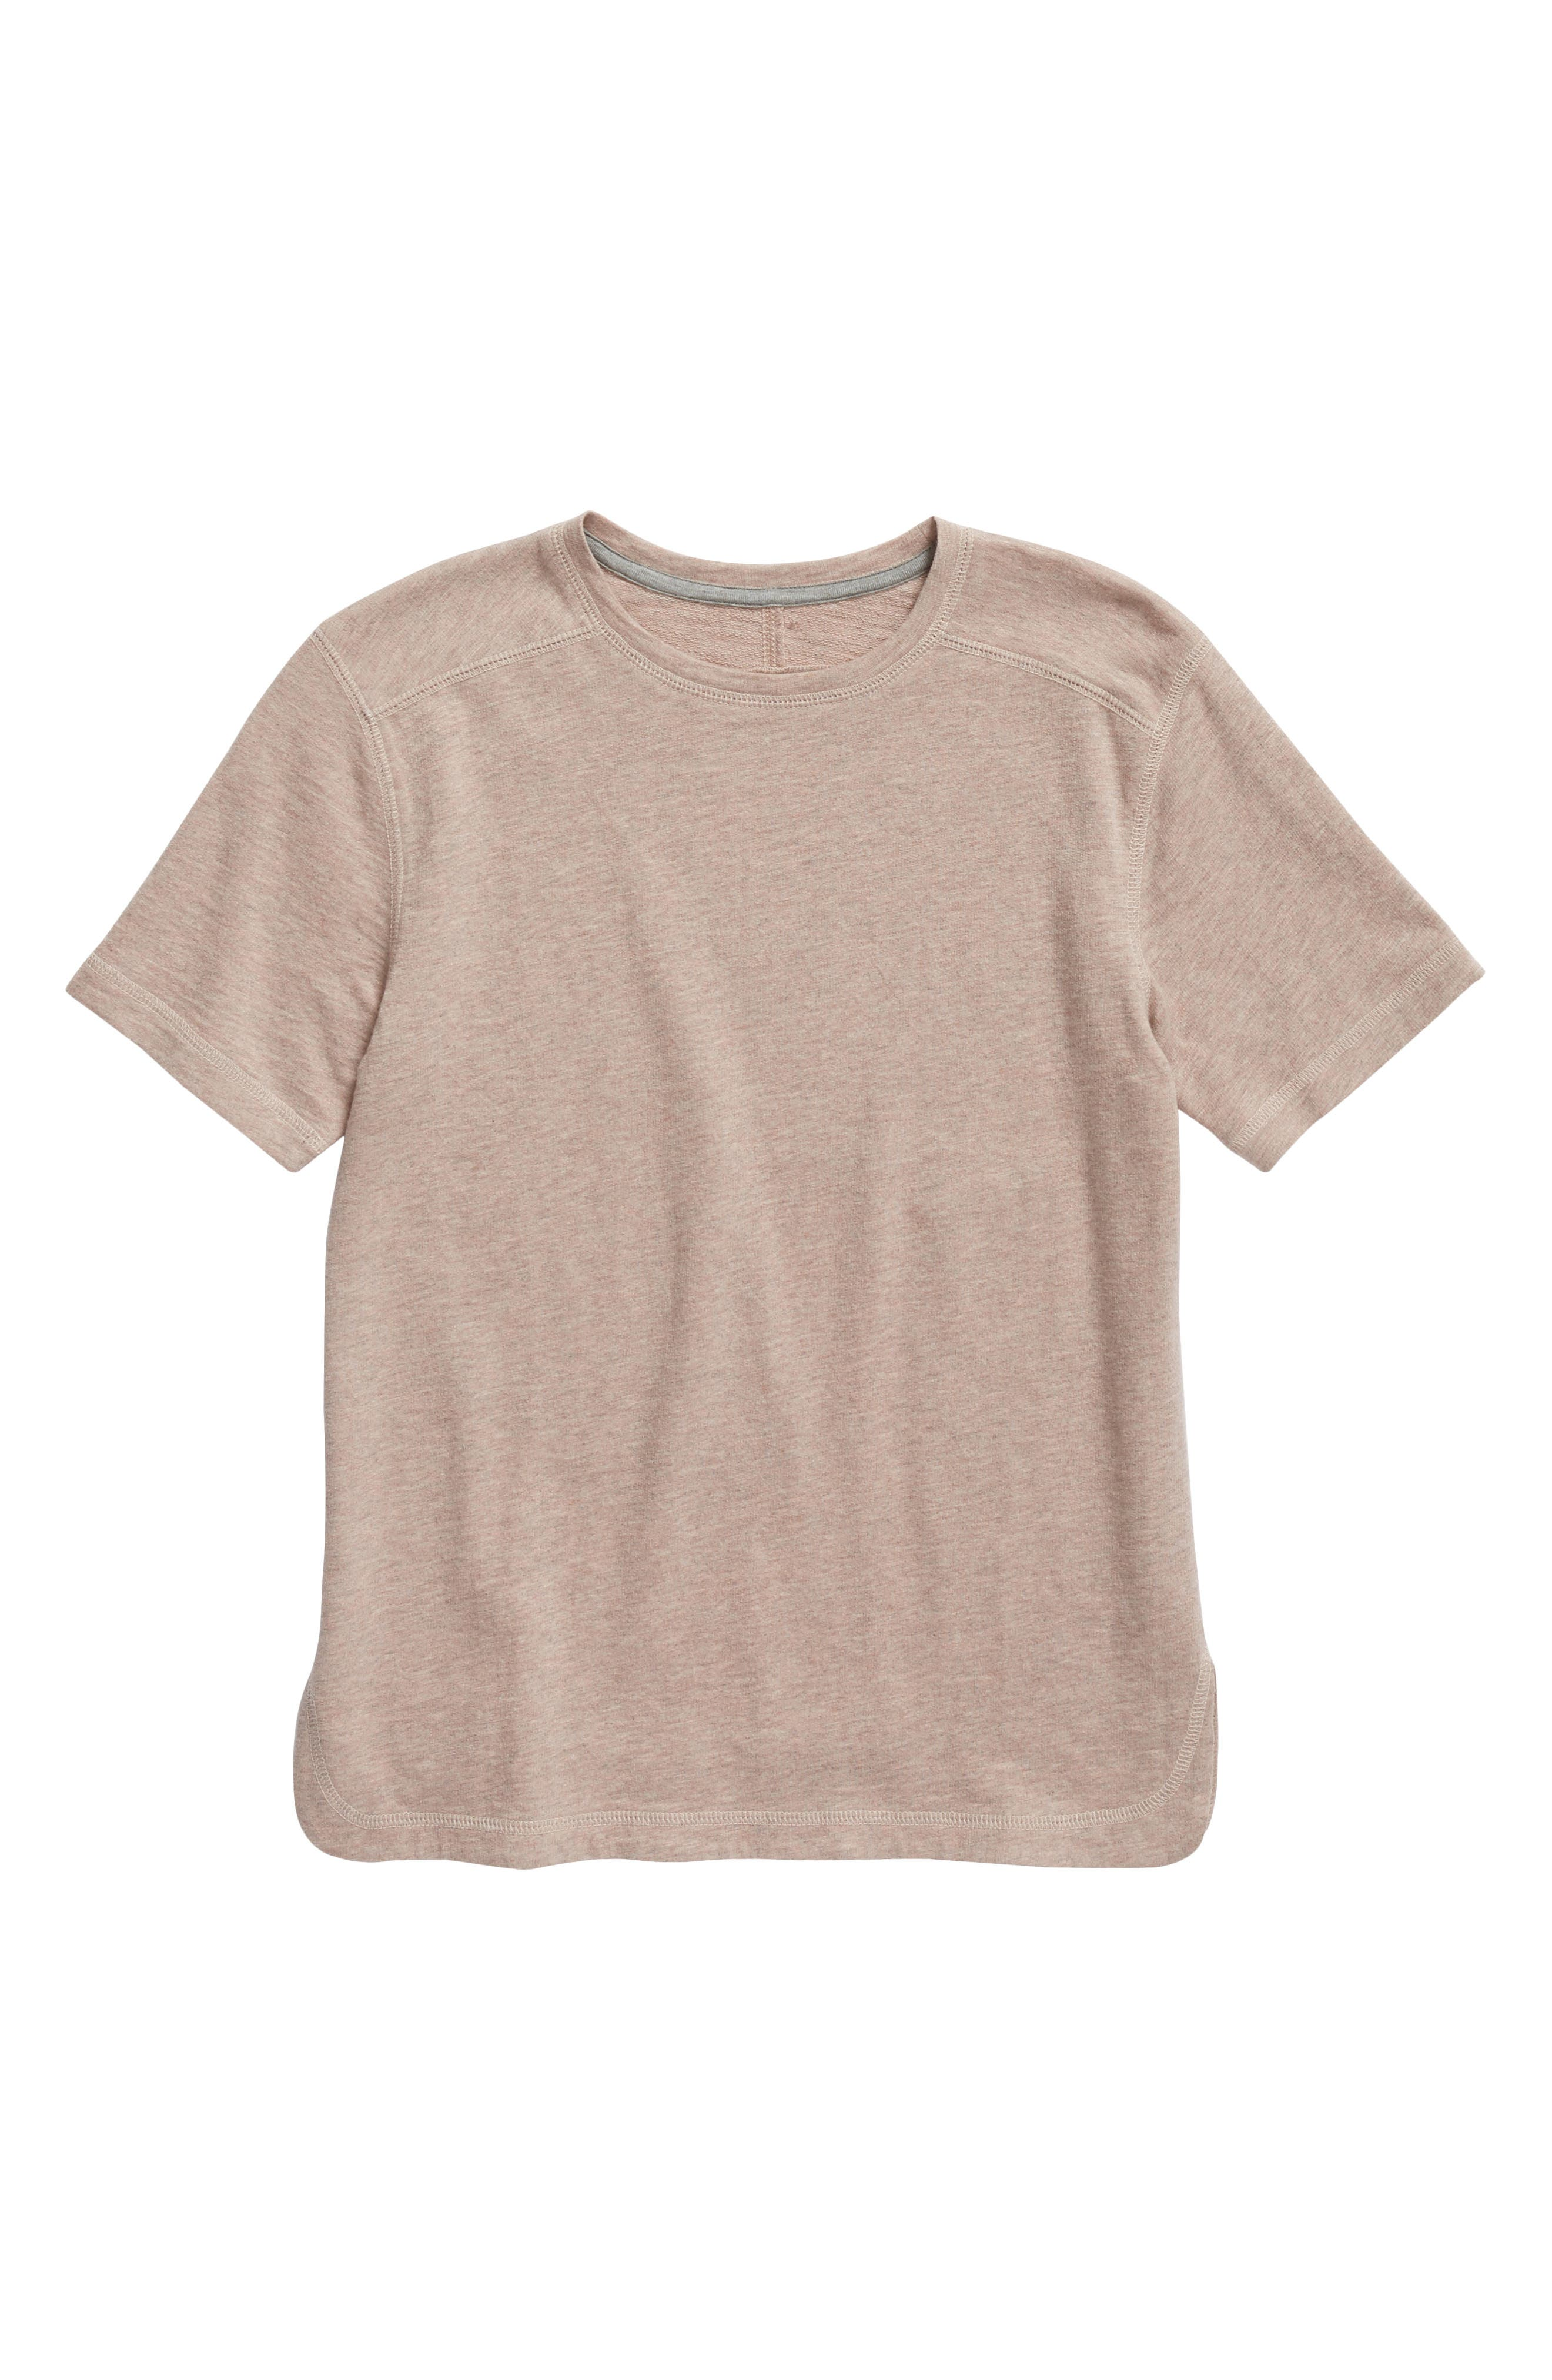 French Terry T-Shirt,                             Main thumbnail 1, color,                             Pink Adobe Heather